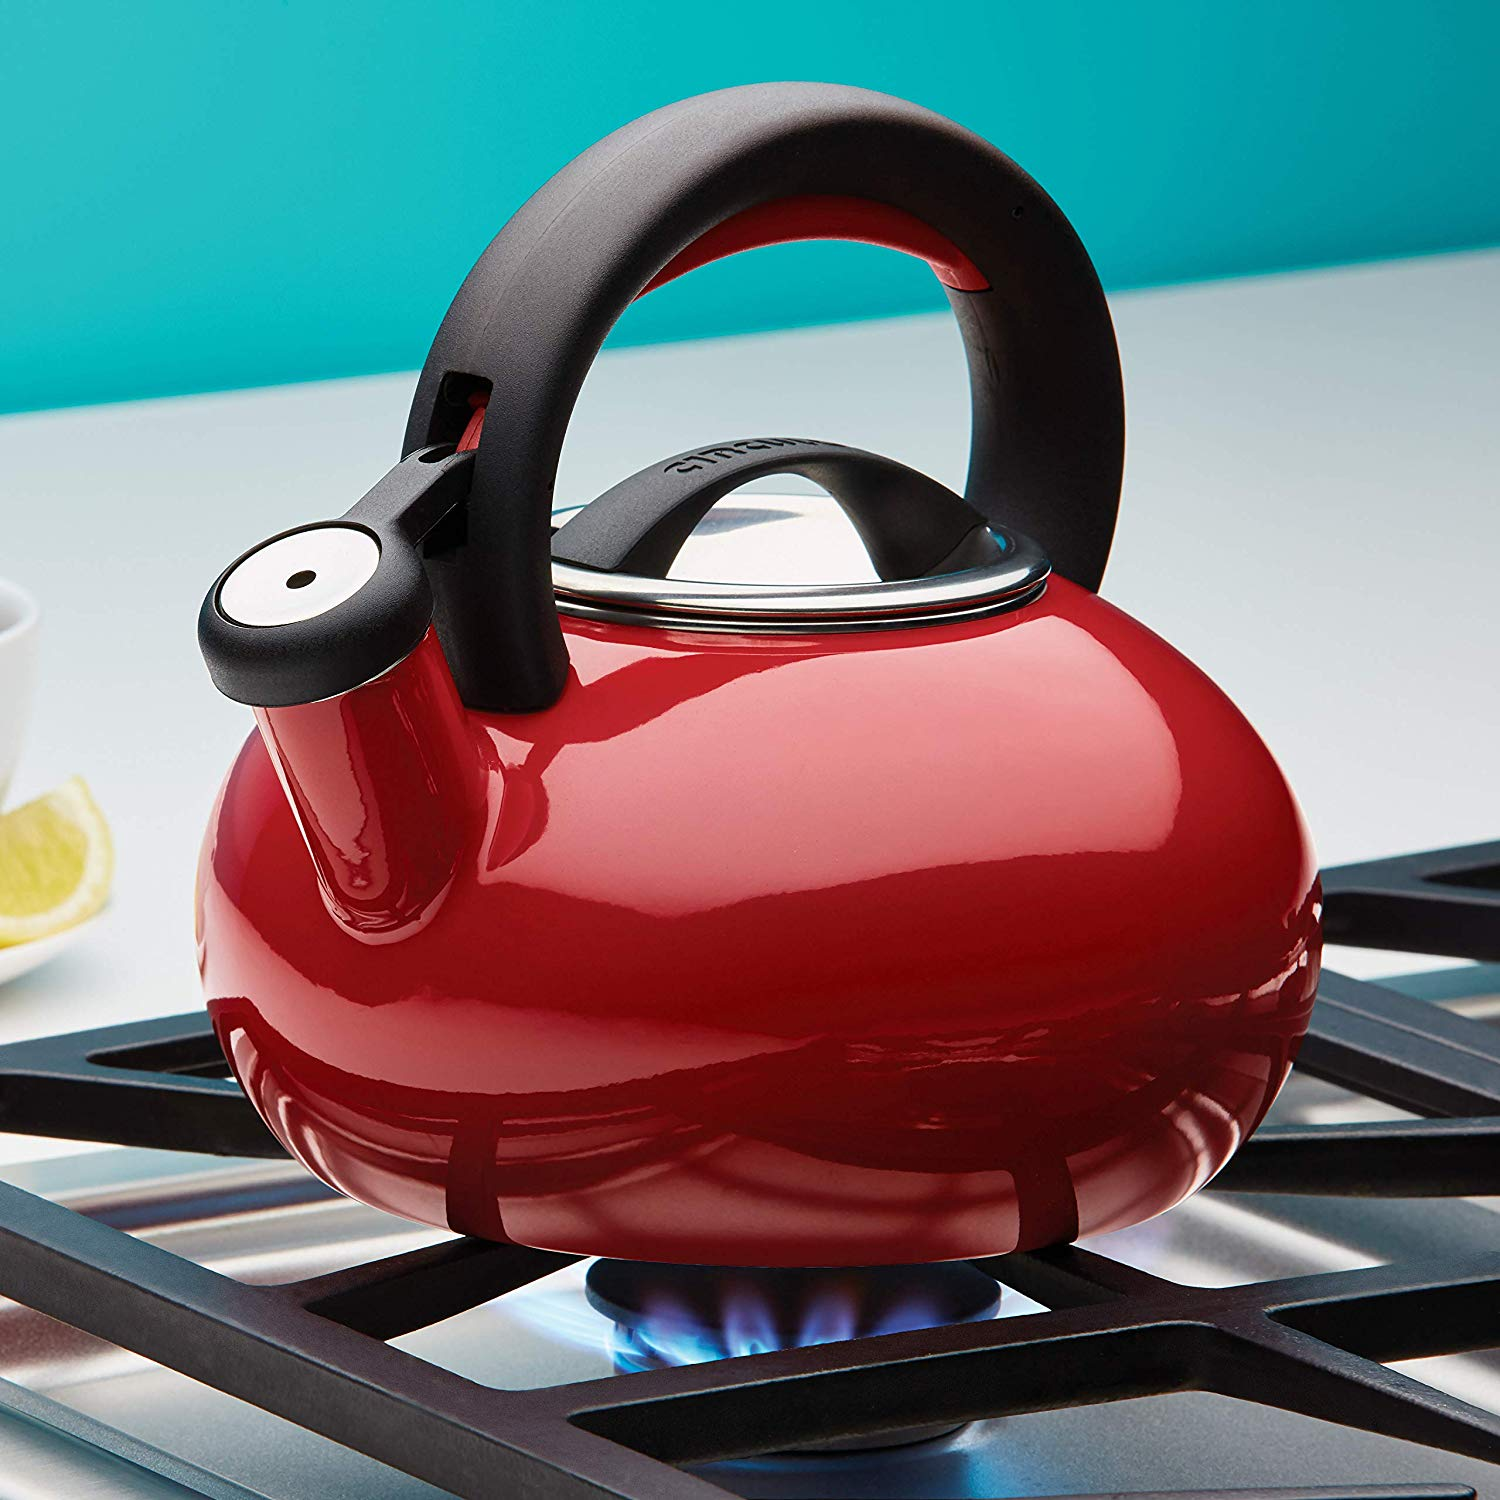 Circulon Sunrise Whistling Teakettle, 1.4-Liter, Red - Pots and Pans